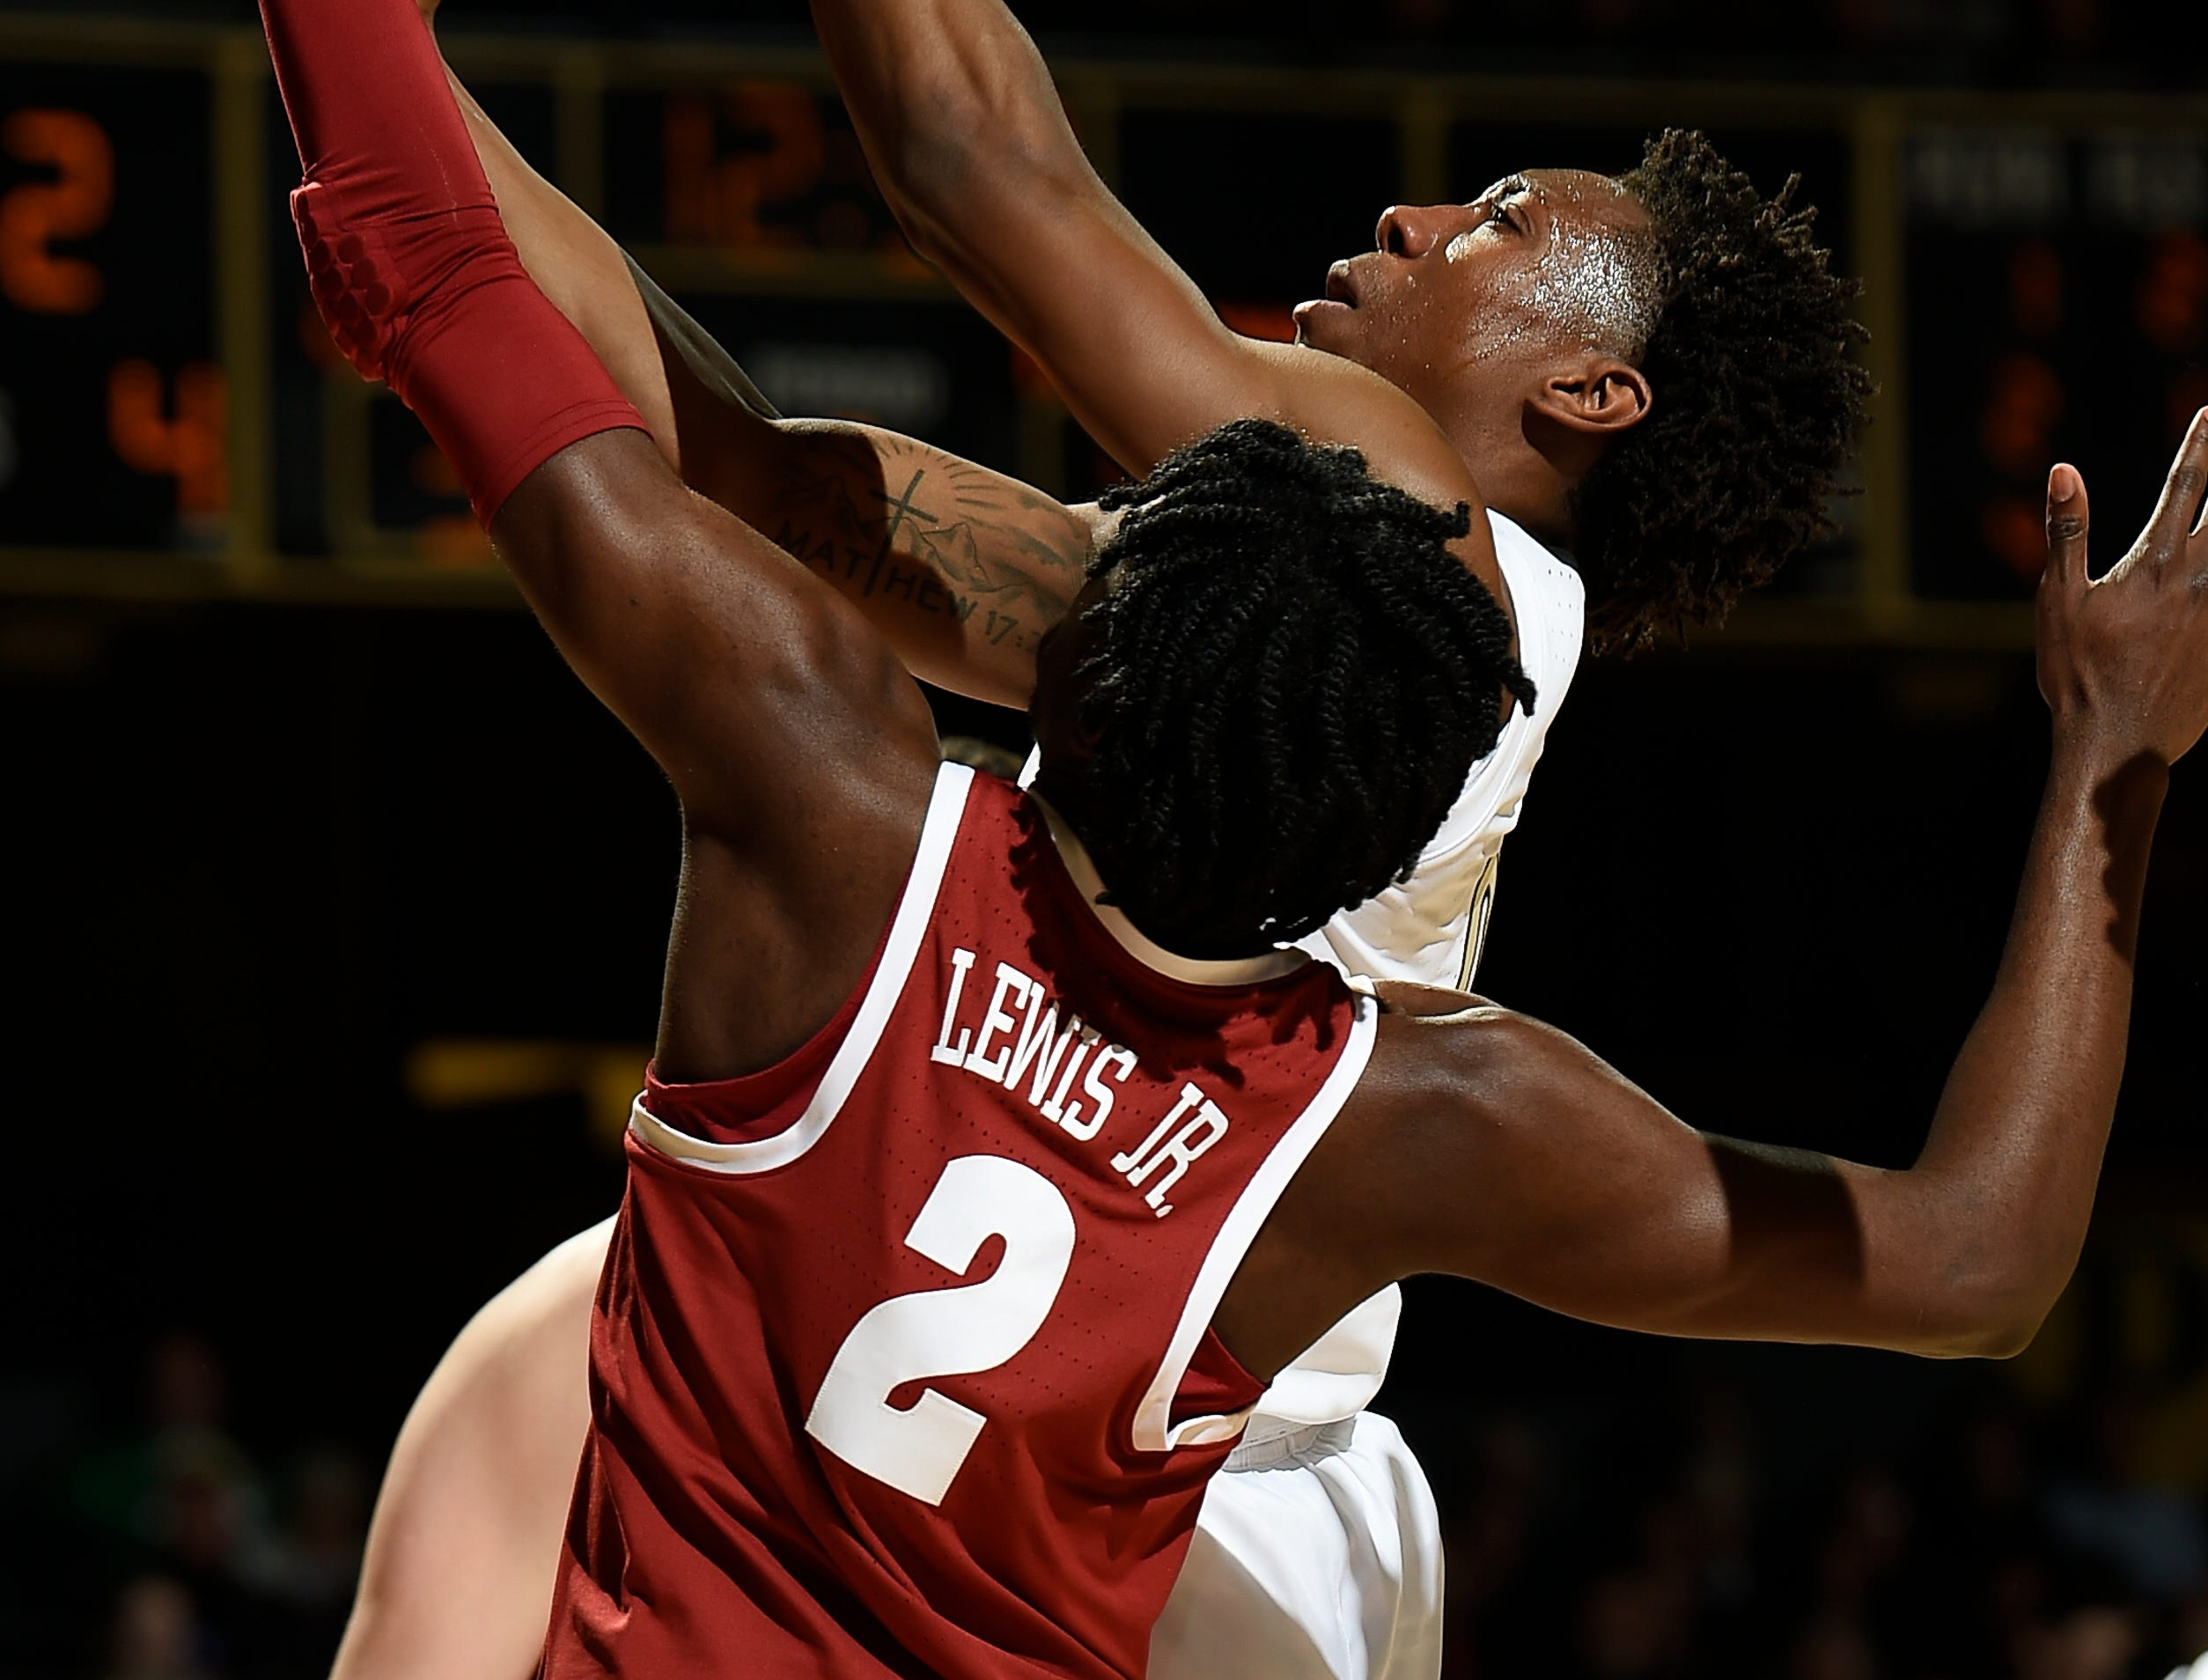 Vanderbilt guard Saben Lee (0) shoots over Alabama guard Kira Lewis Jr. (2) during the second half at Memorial Gym Saturday Feb. 9, 2019 in Nashville, Tenn.